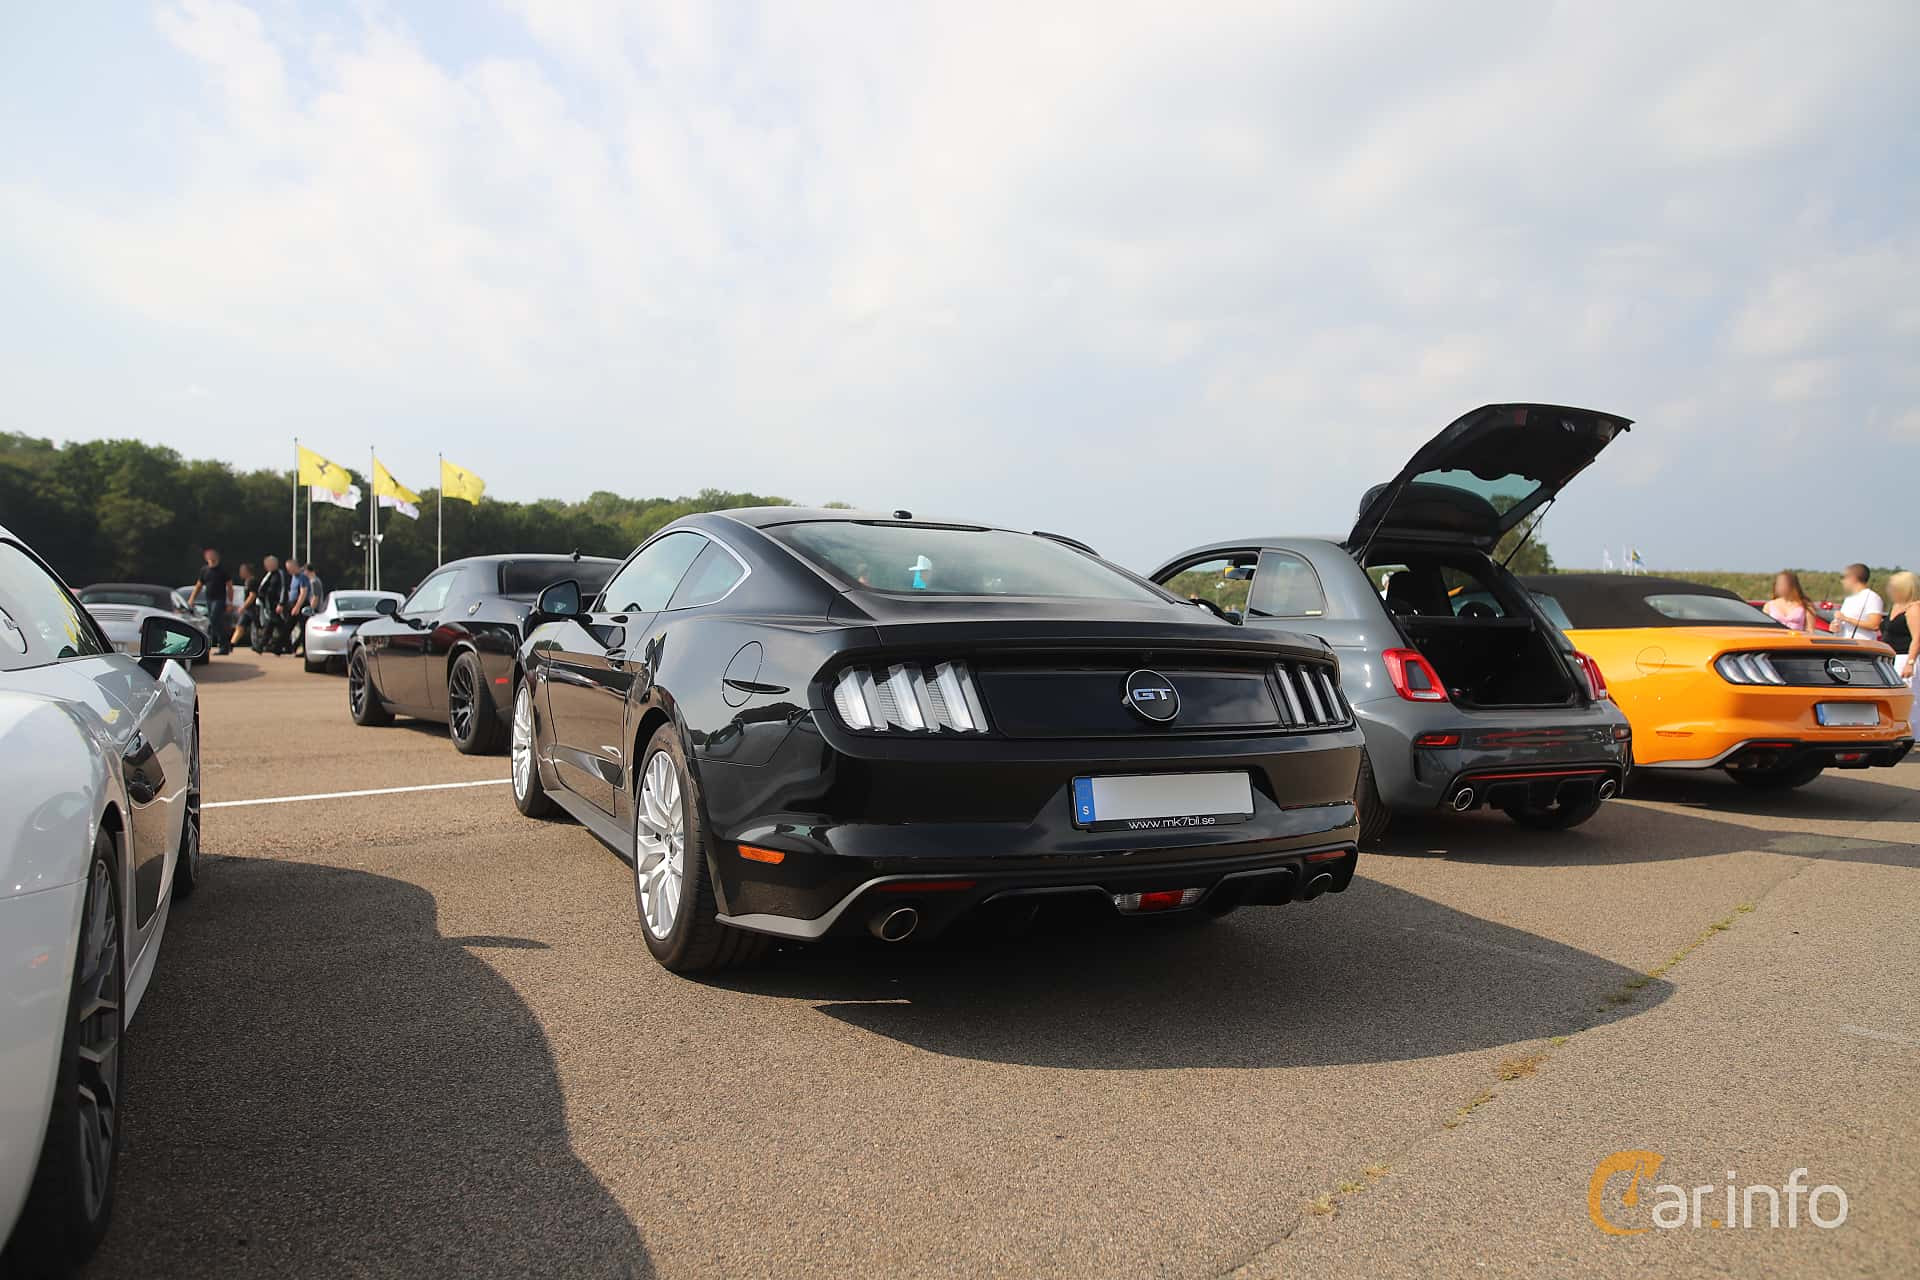 Ford Mustang GT 5.0 V8 SelectShift, 421hp, 2017 at Autoropa Racing day Knutstorp 2019